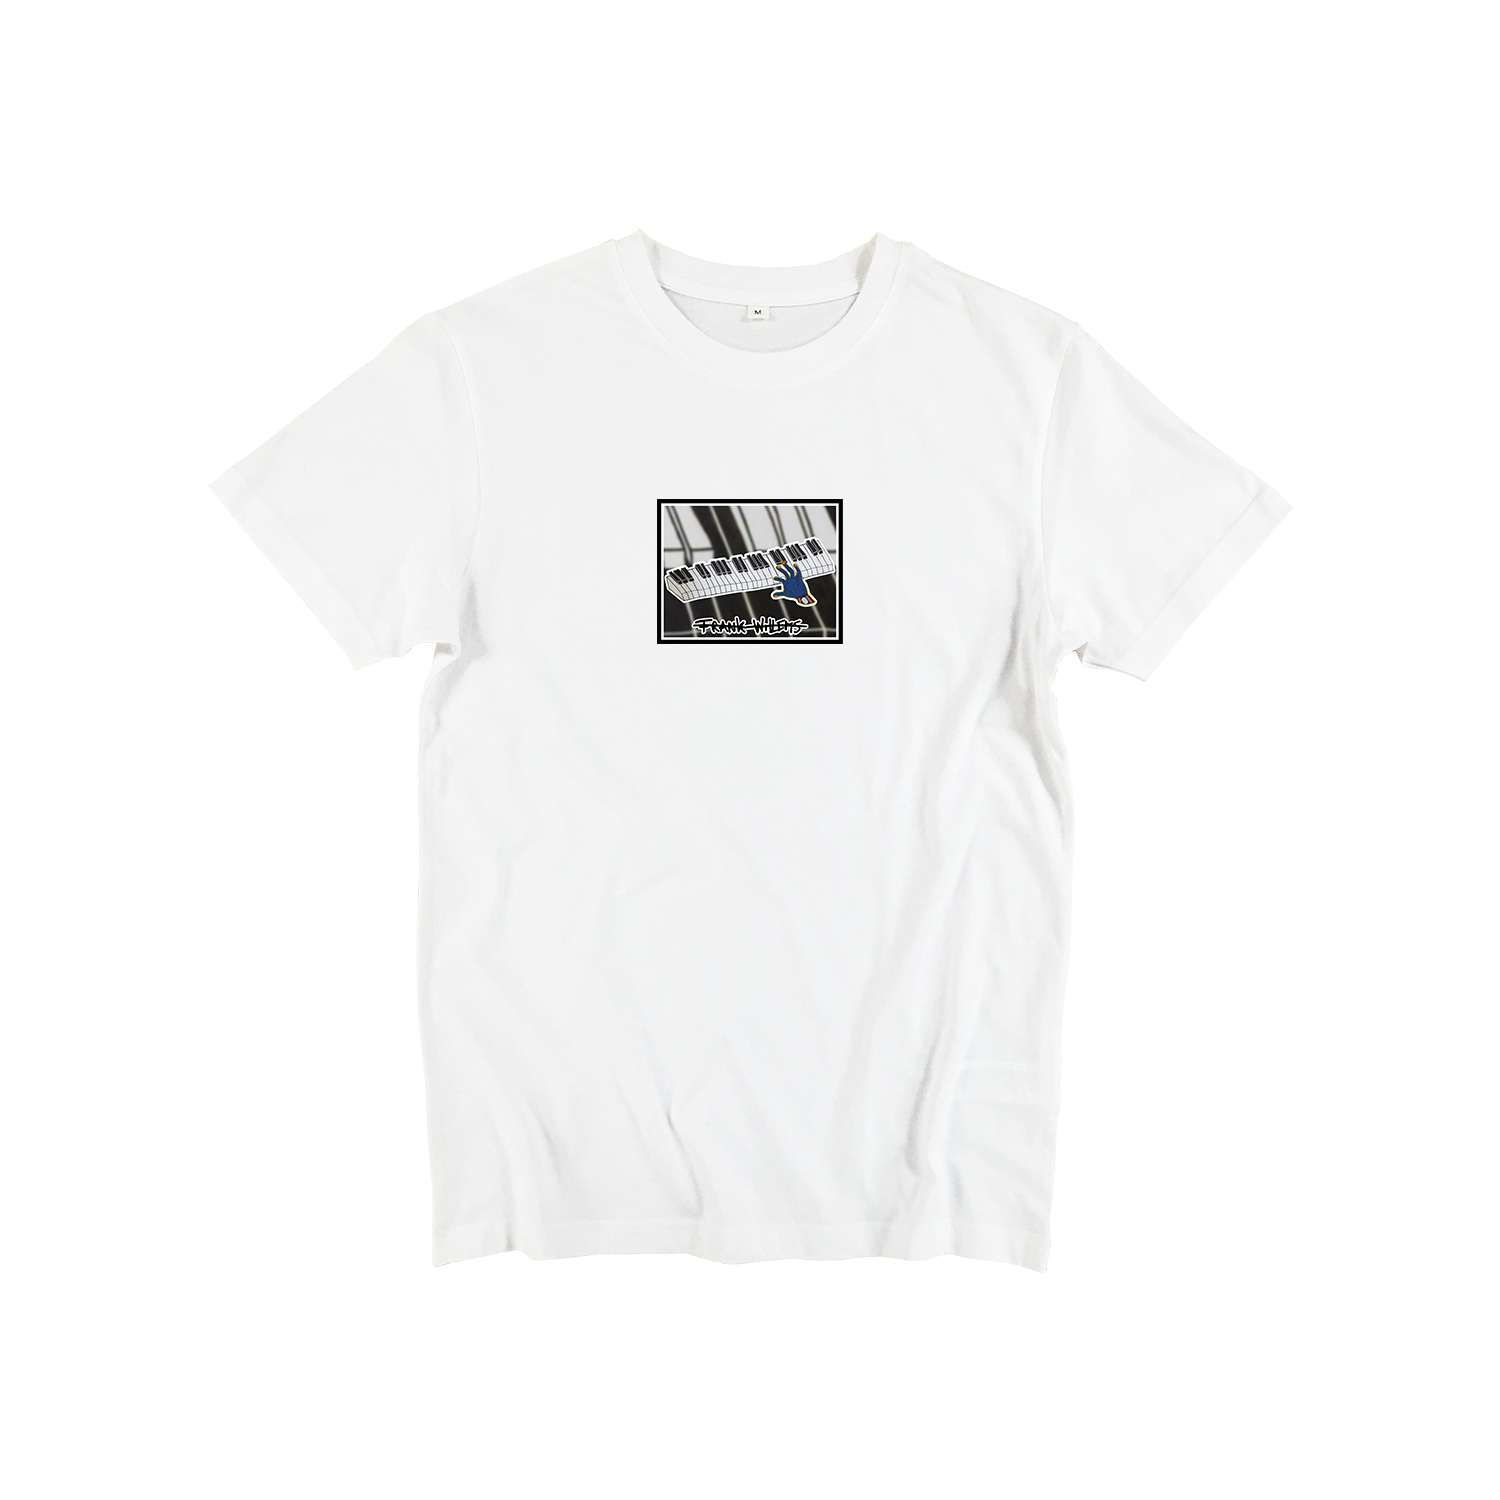 T-shirt white - ONE PRESS CLOSER TO MUSIC - Frank Willems